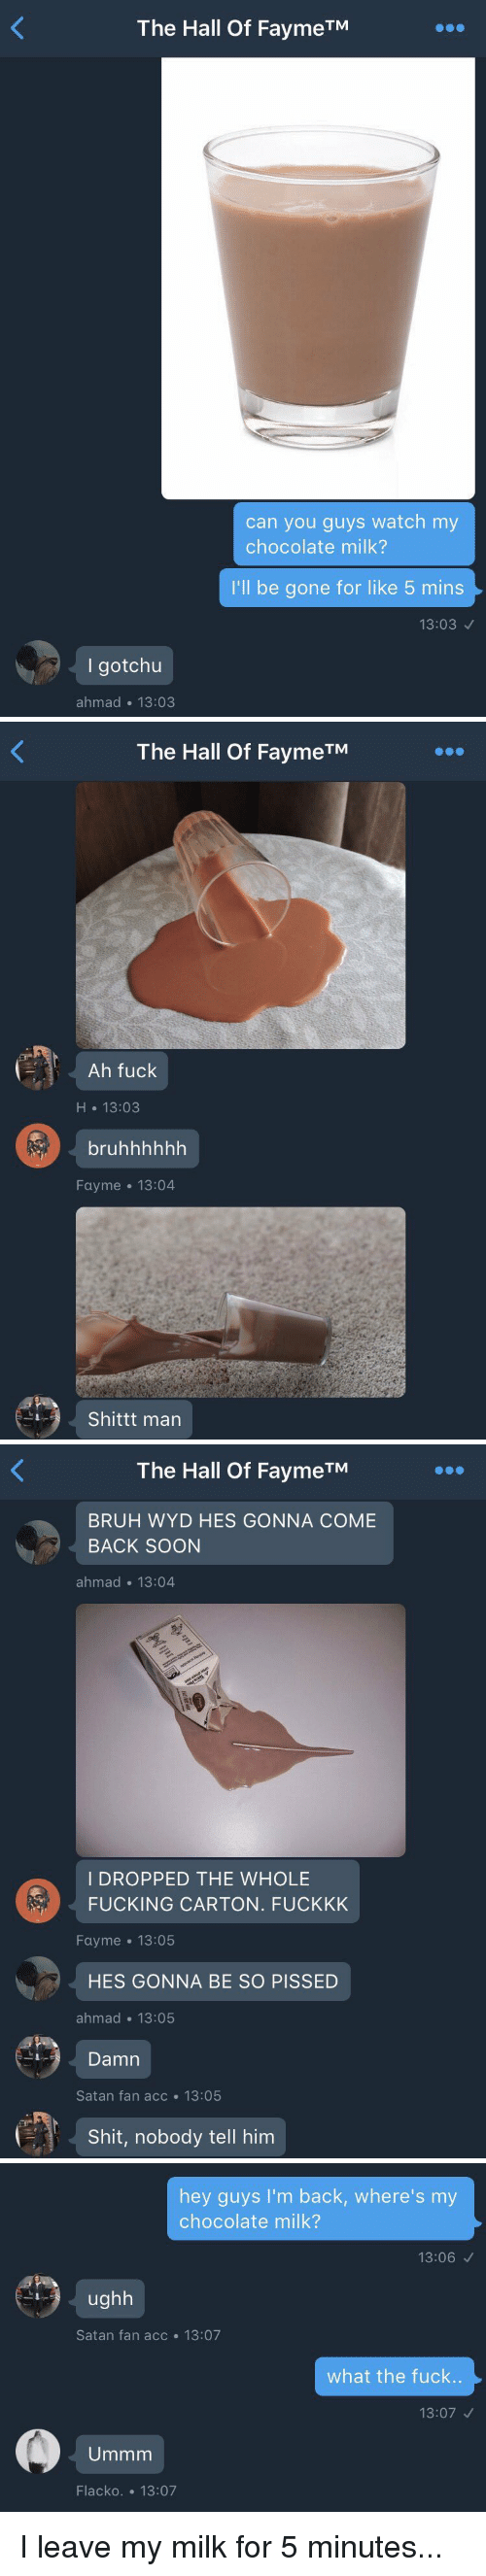 Wyd, Satan, and Hood: The Hall of FaymeTM  can you guys watch my  chocolate milk?  I'll be gone for like 5 mins  13:03  I got chu  ahmad 13:03   The Hall of FaymeTM  Ah fuck  H 13:03  bruhhhhhh  Fayme 13:04  Shittt man   The Hall of FaymeTM  BRUH WYD HES GONNA COME  BACK SOON  ahmad 13:04  I DROPPED THE WHOLE  FUCKING CARTON. FUCKKK  Fayme 13:05  HES GONNA BE SO PISSED  ahmad 13:05  Damn  Satan fan acc 13:05  Shit, nobody tell him   hey guys I'm back, where's my  chocolate milk?  13:06  ughh  Satan fan acc 13:07  what the fuck.  13:07  Ummm  Flacko. 13:07 I leave my milk for 5 minutes...